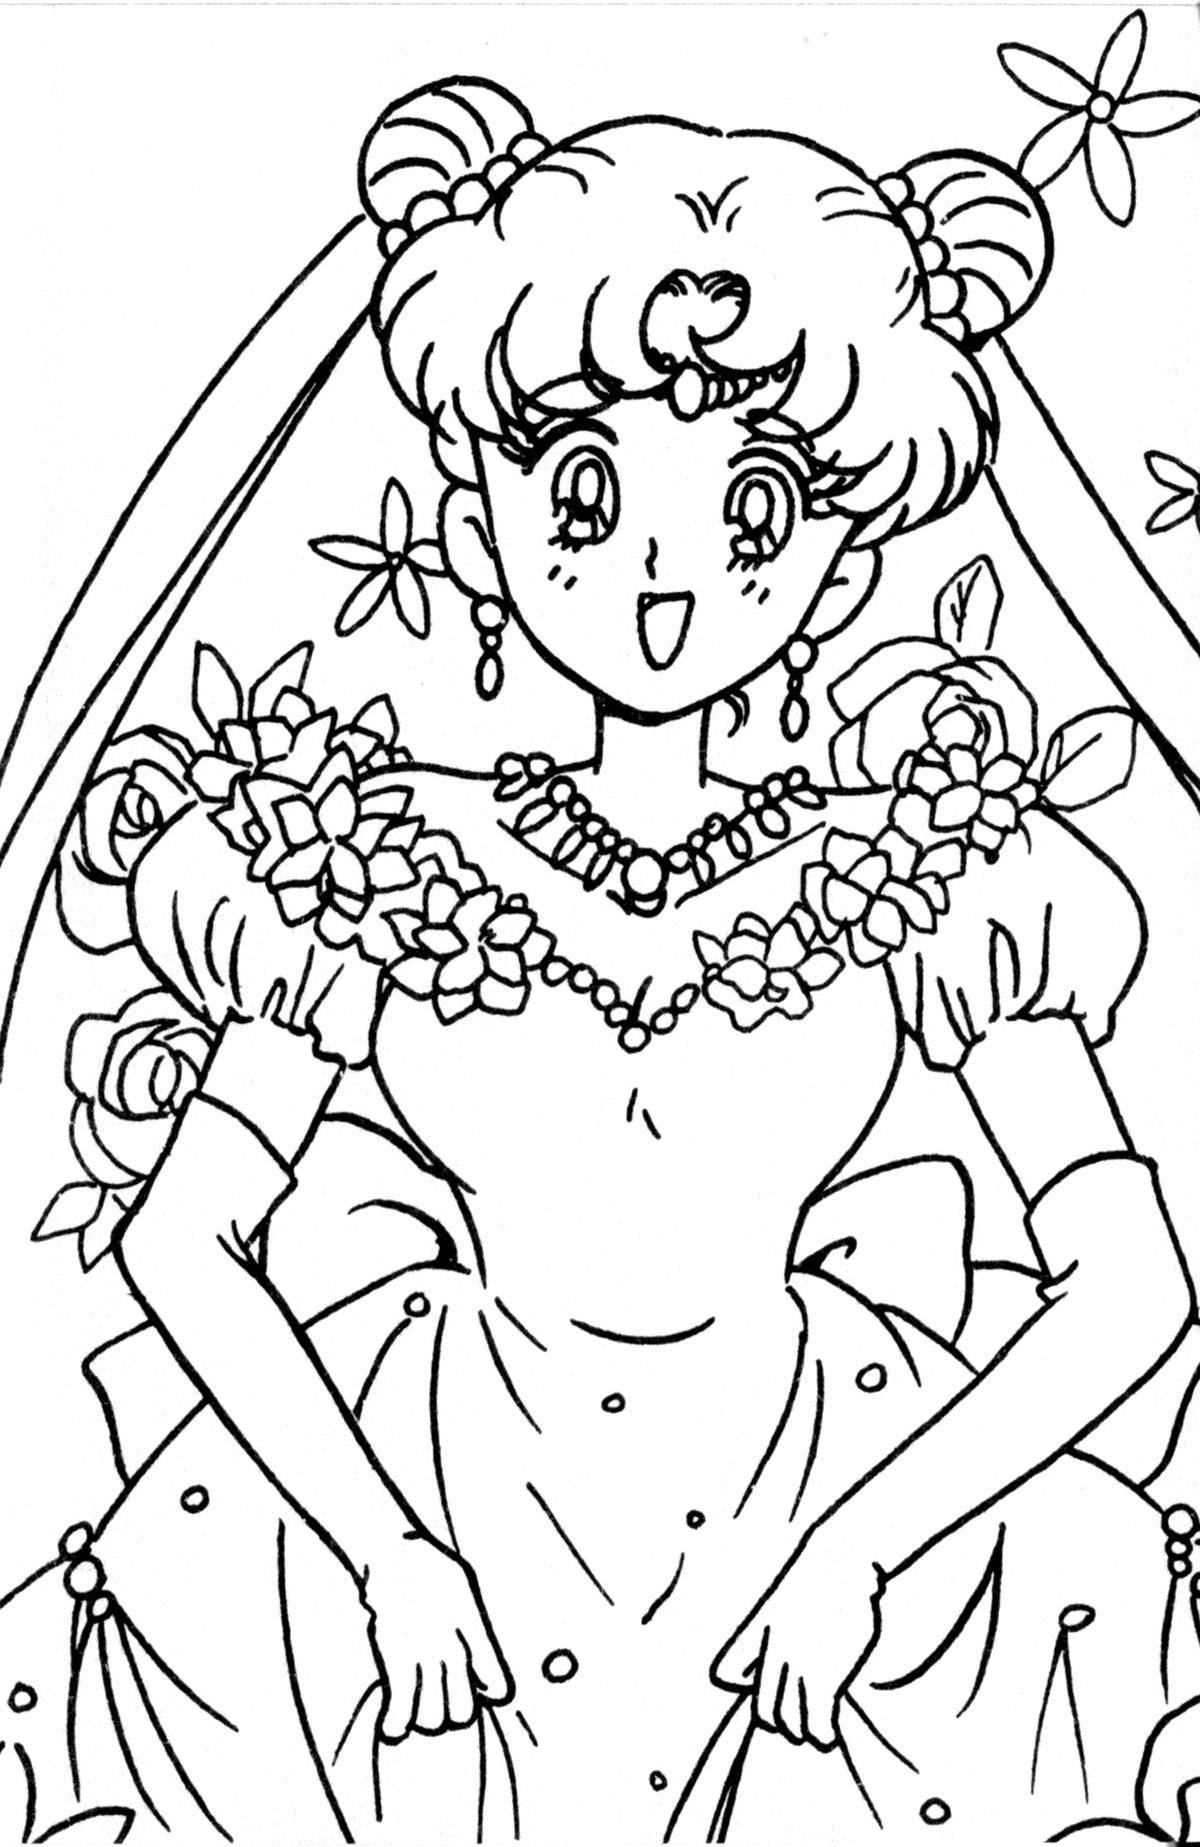 Fruits Basket Anime Coloring Pages